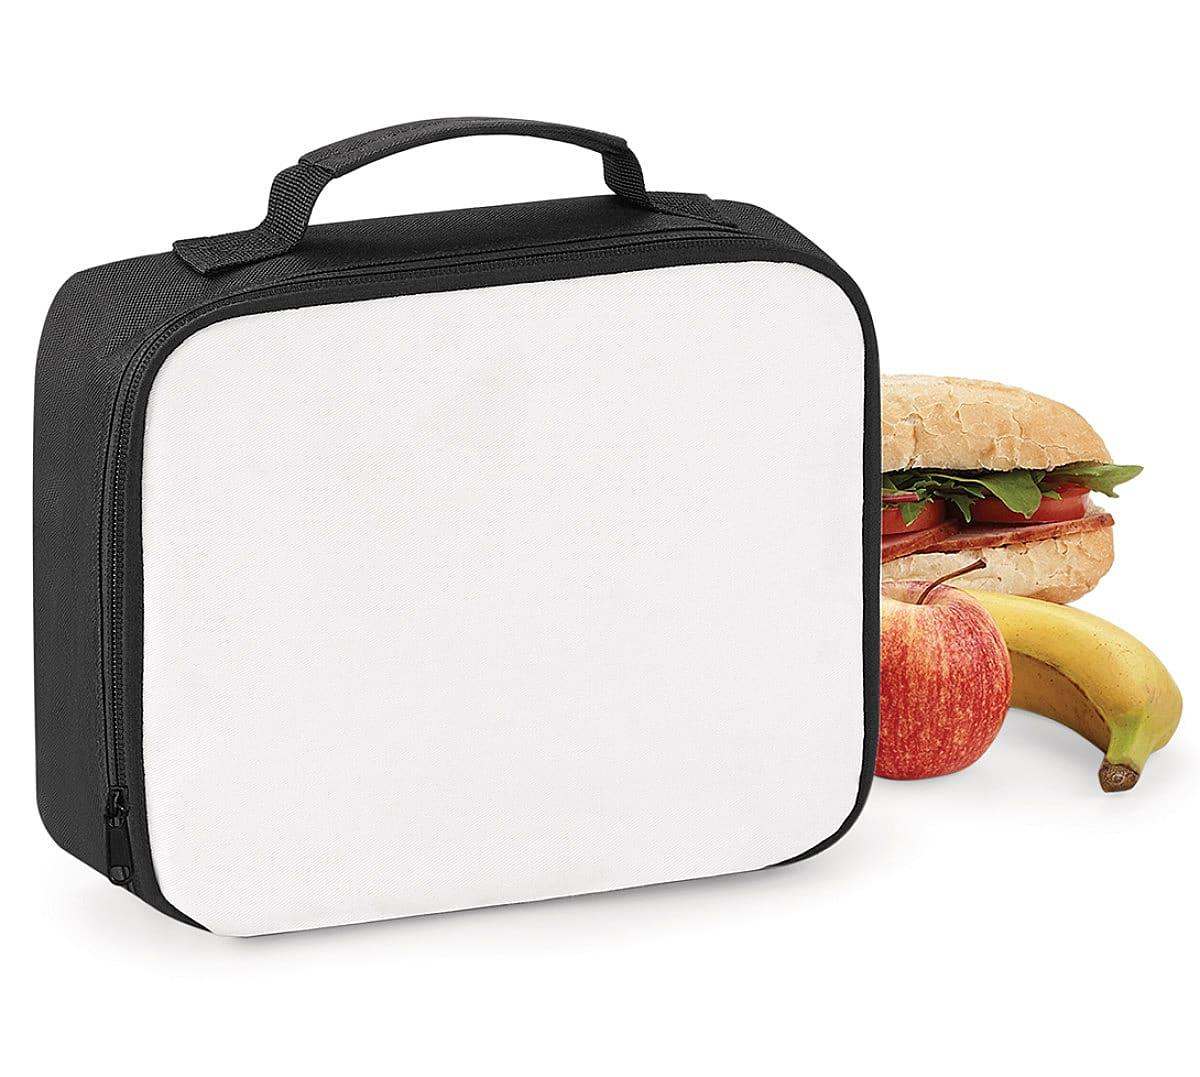 Bagbase Sublimation Lunch Cooler Bag in Black (Product Code: BG960)